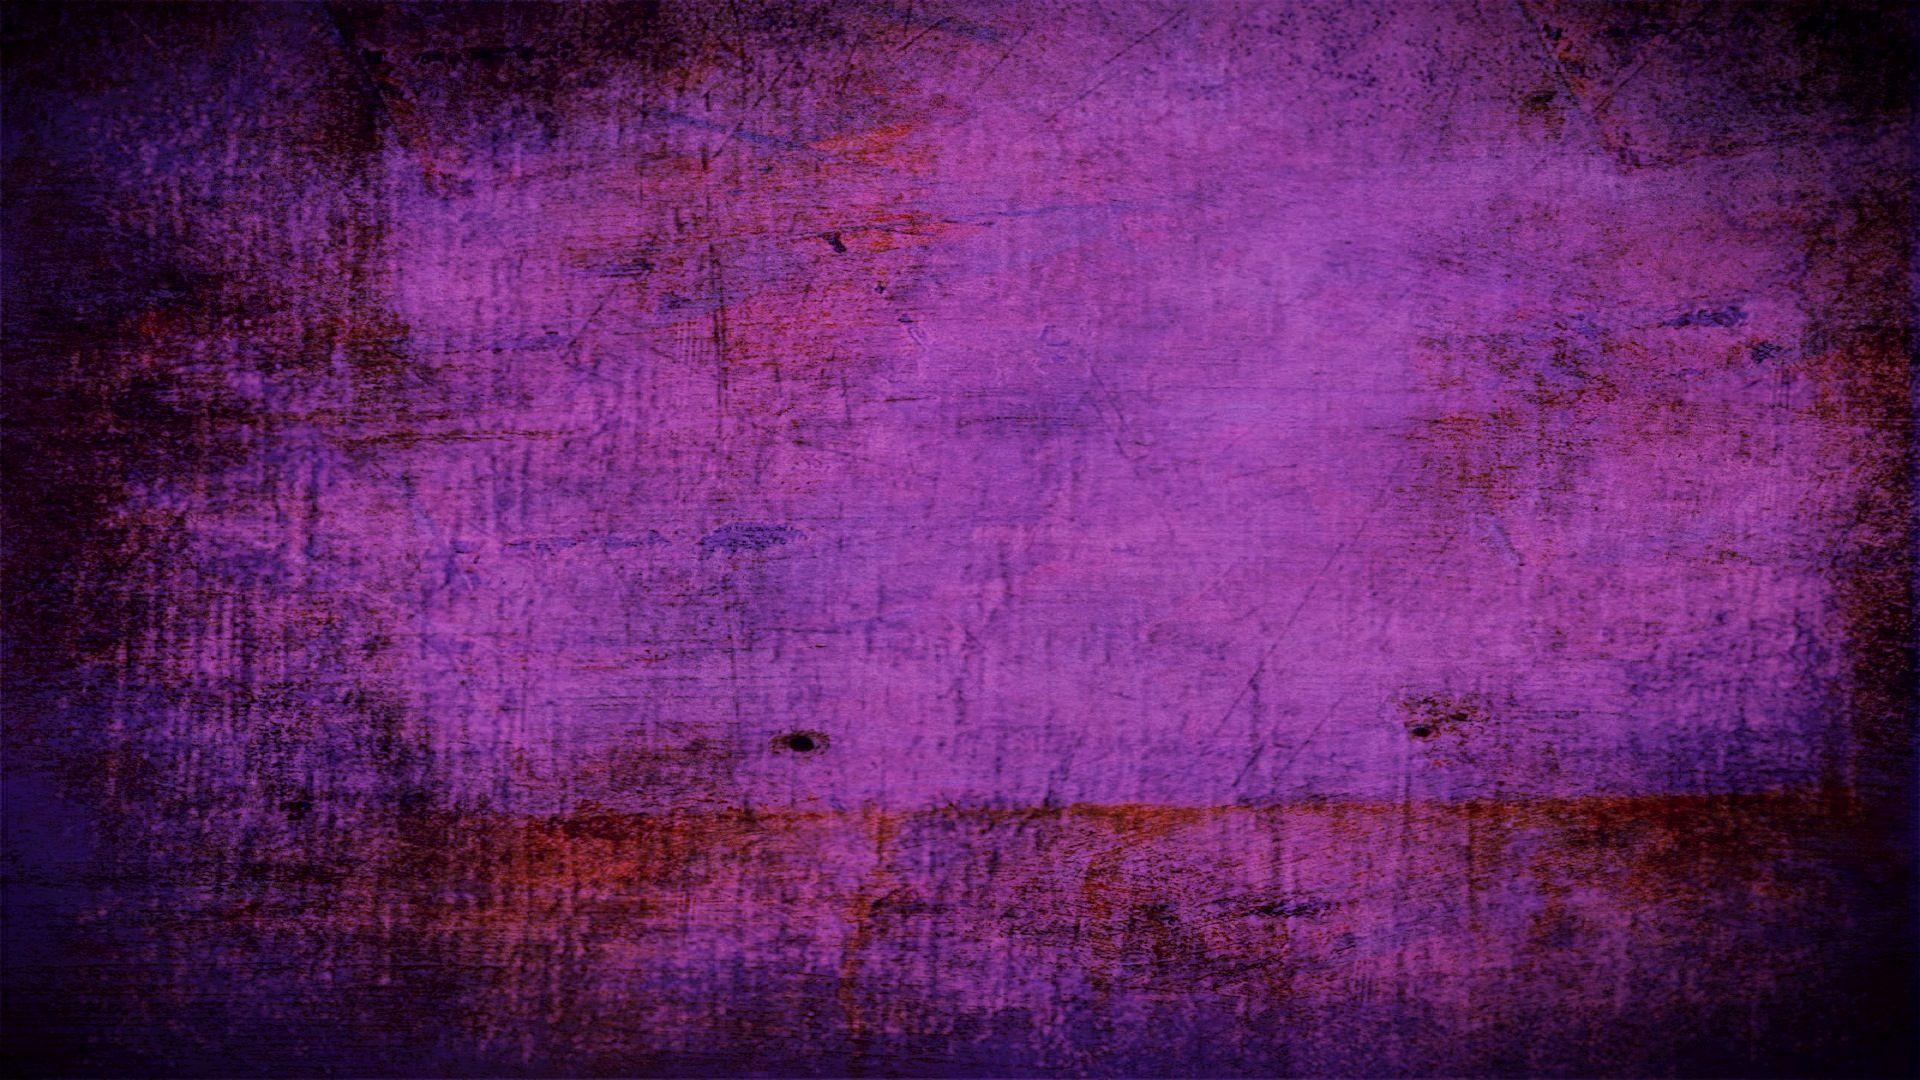 Textured Backgrounds Image